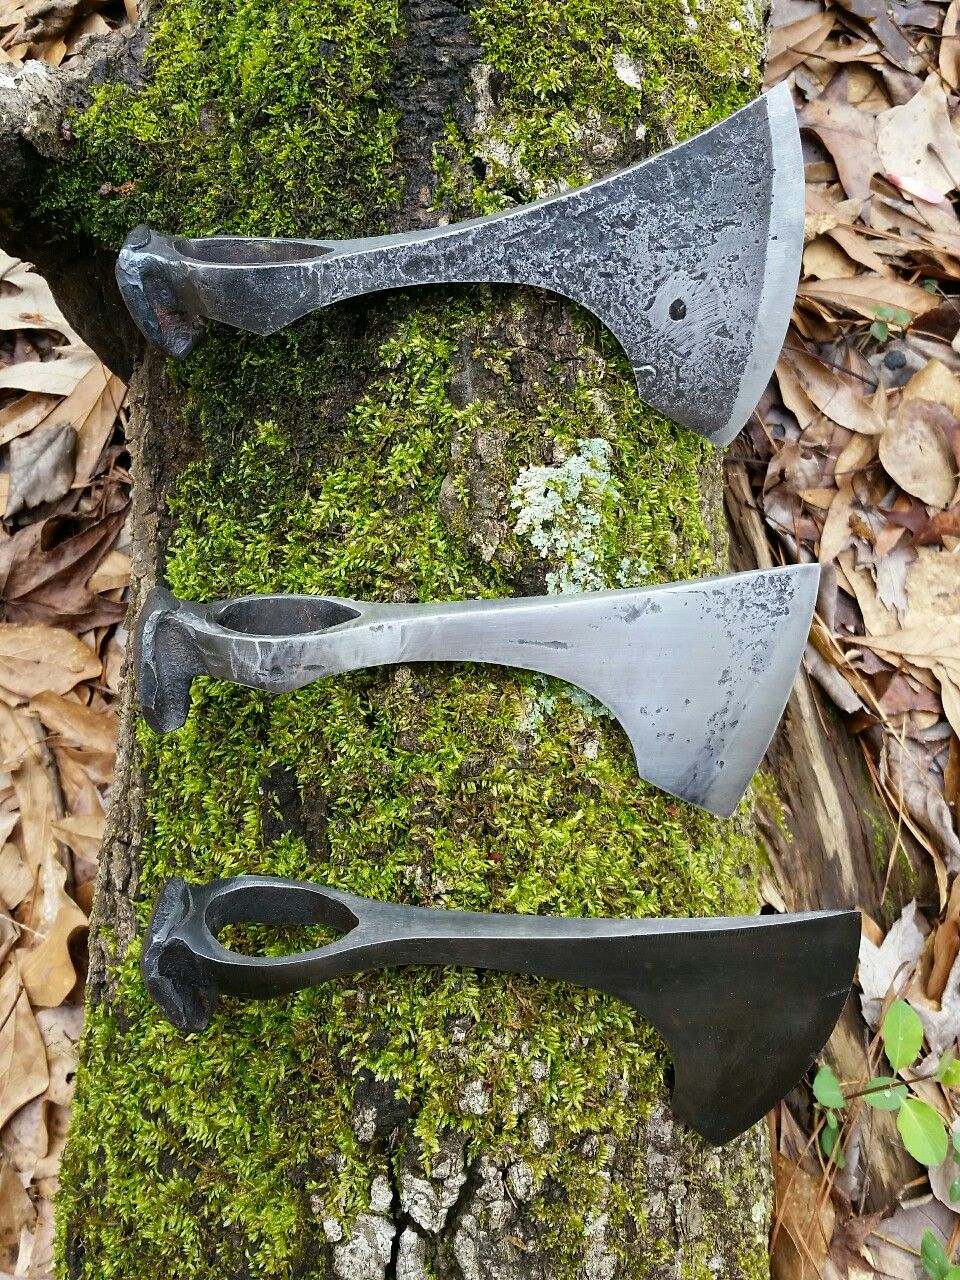 blacksmith projects. railroad spike blacksmith projects - google search